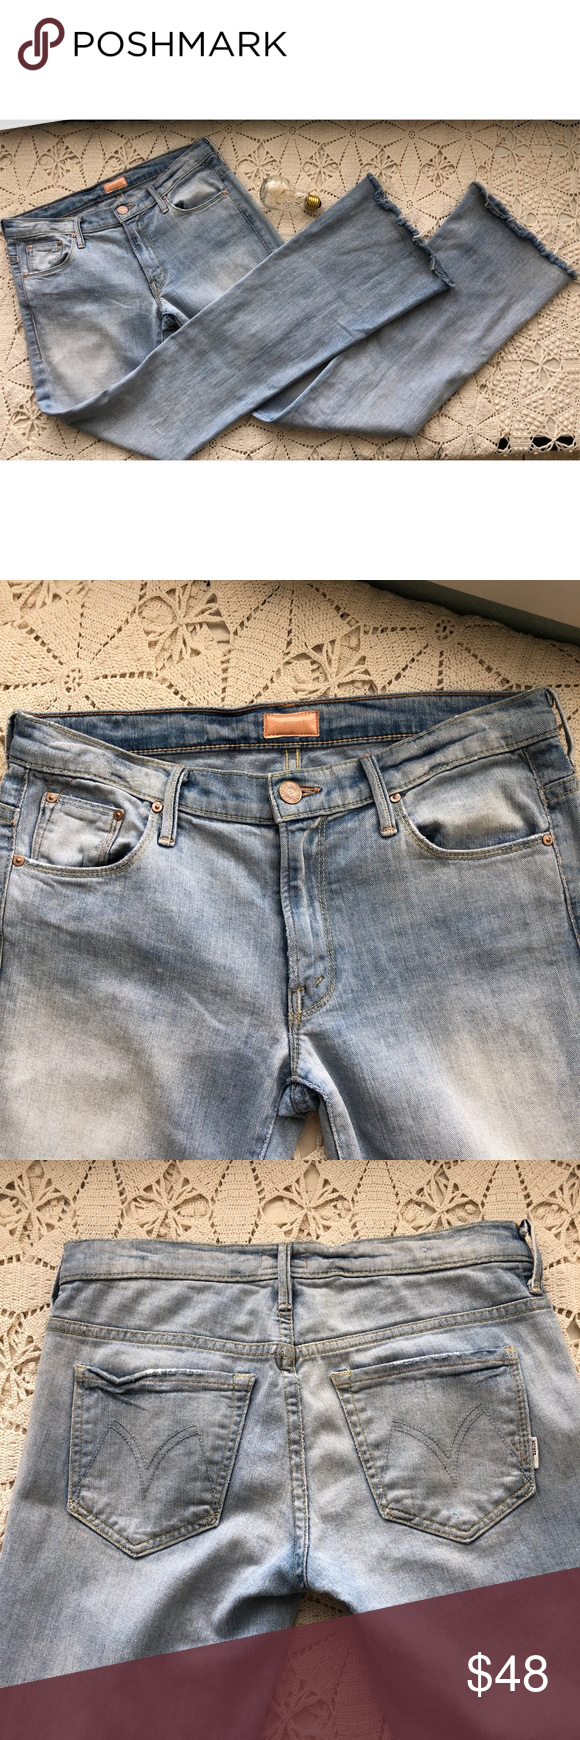 cd5eece63969546f9585f63392d8131b - How To Get Dirt Stains Out Of Light Jeans